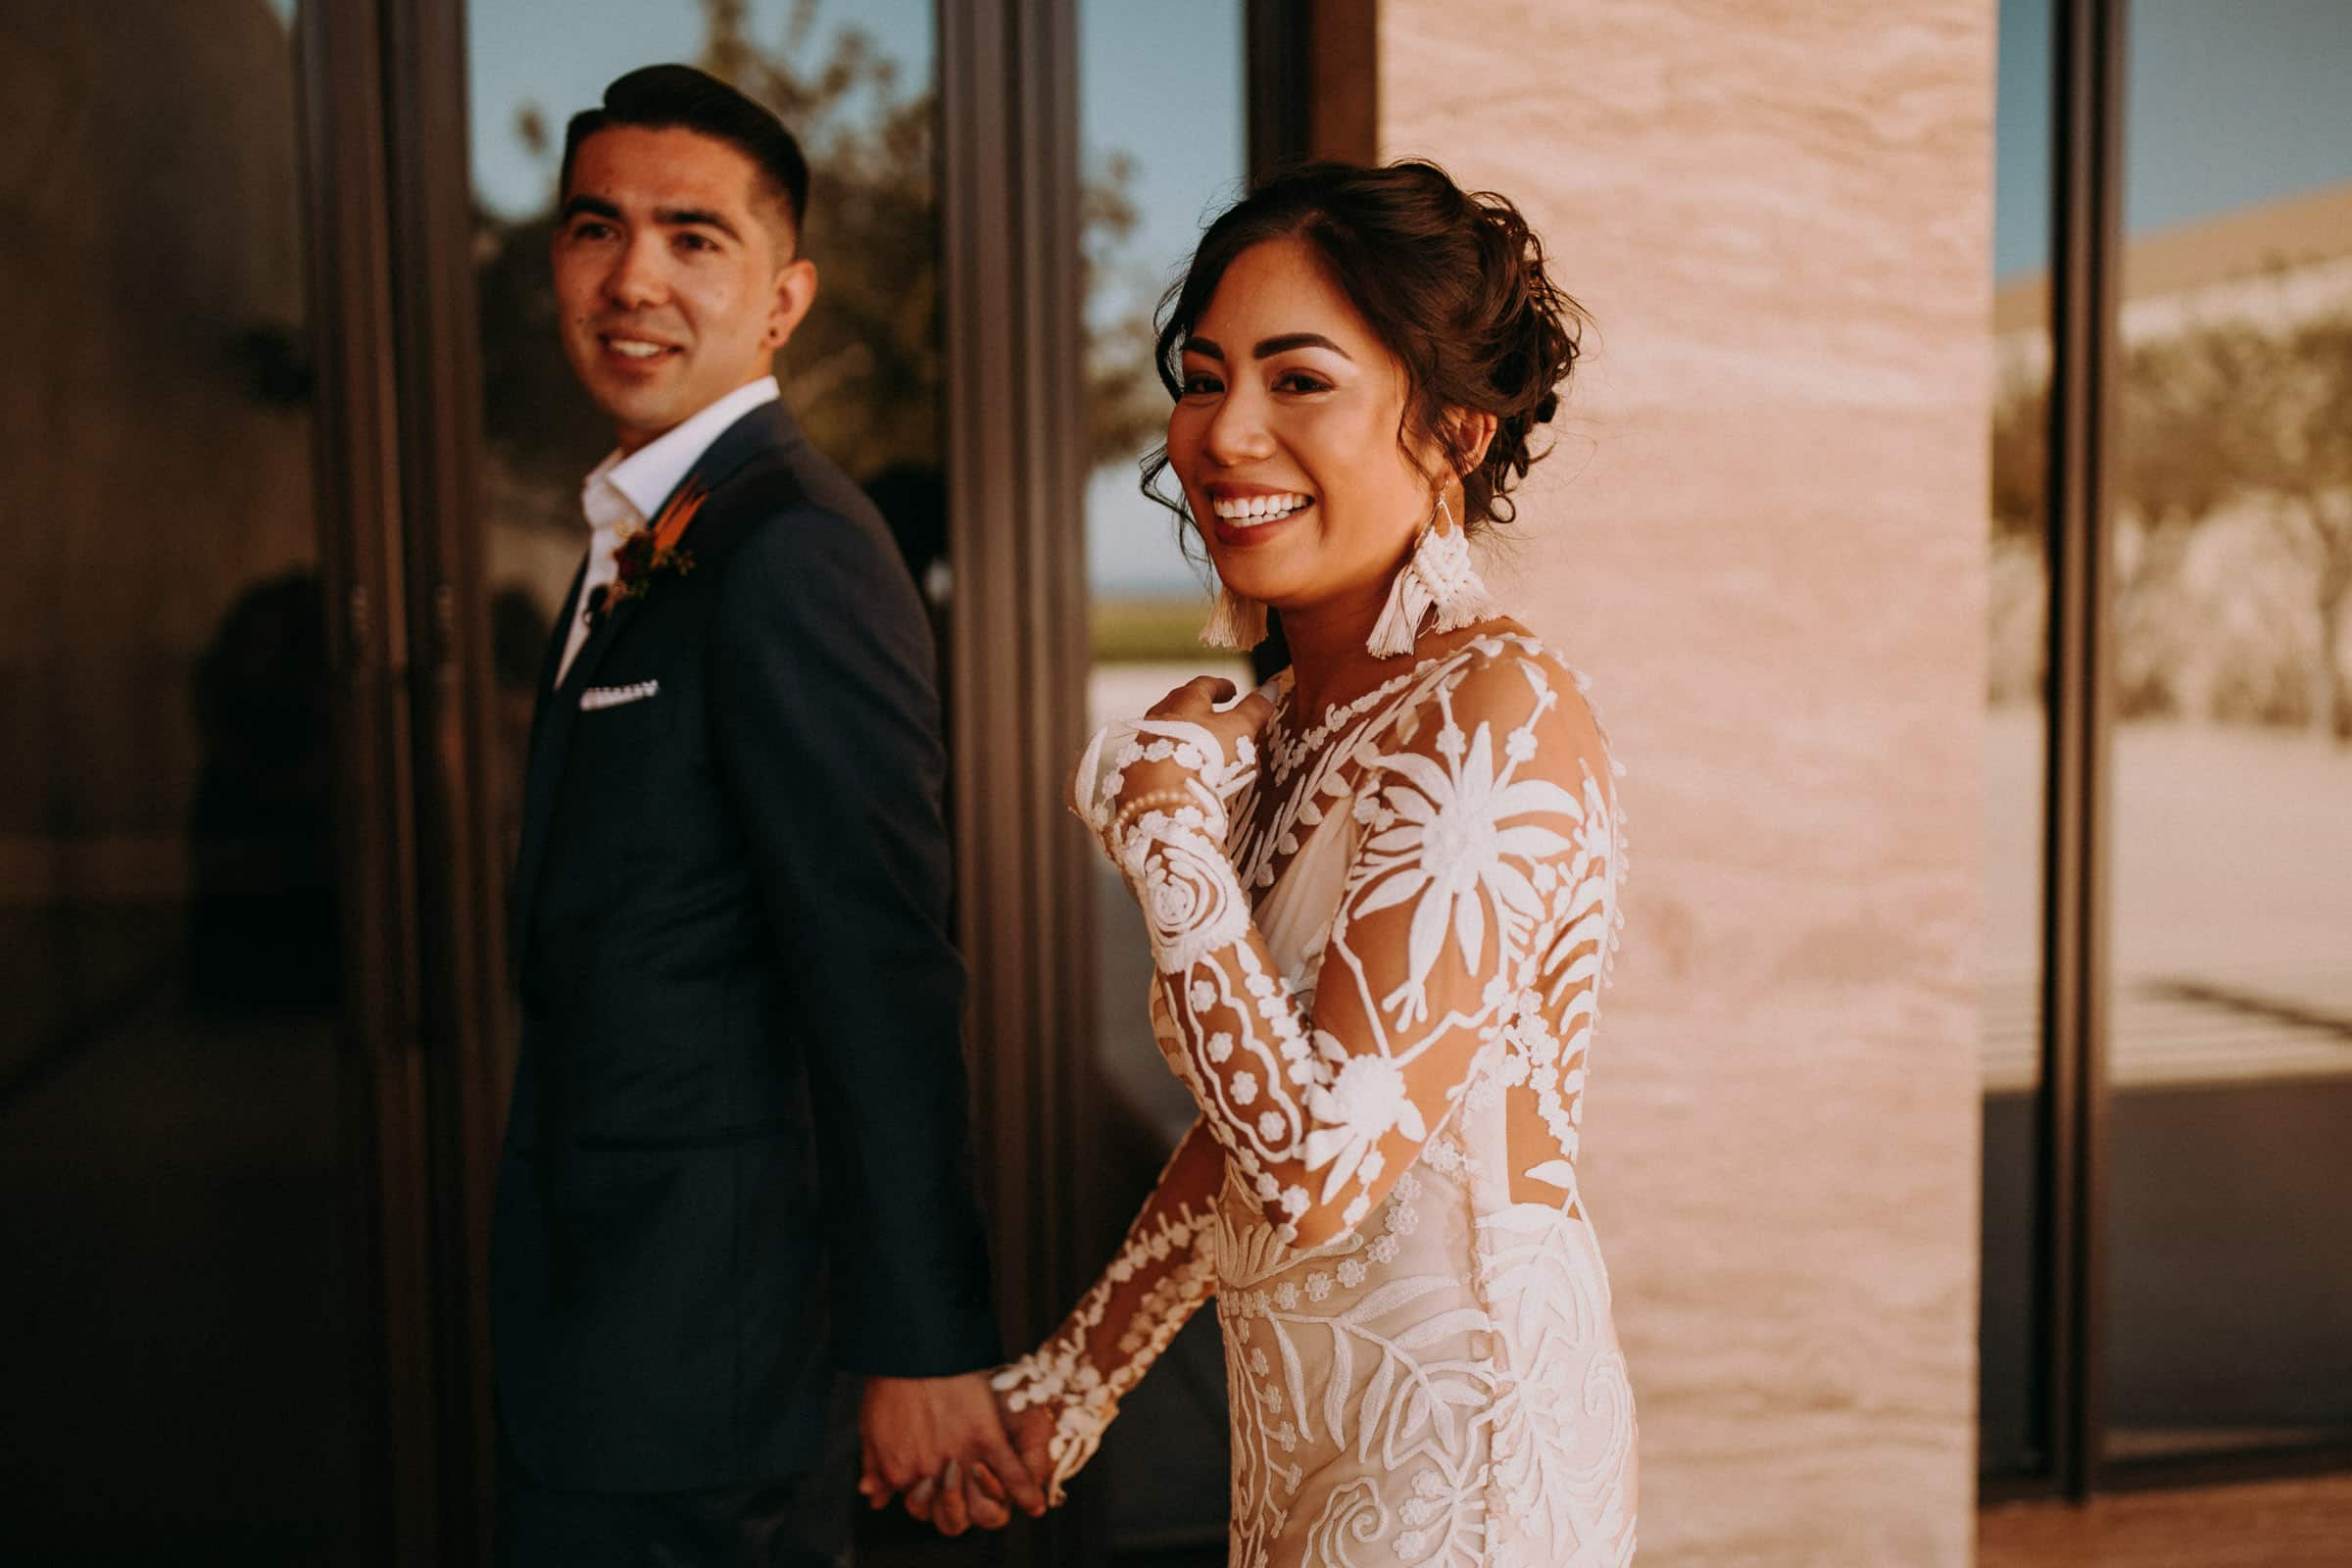 A wedding couple is holding hands and smiling.